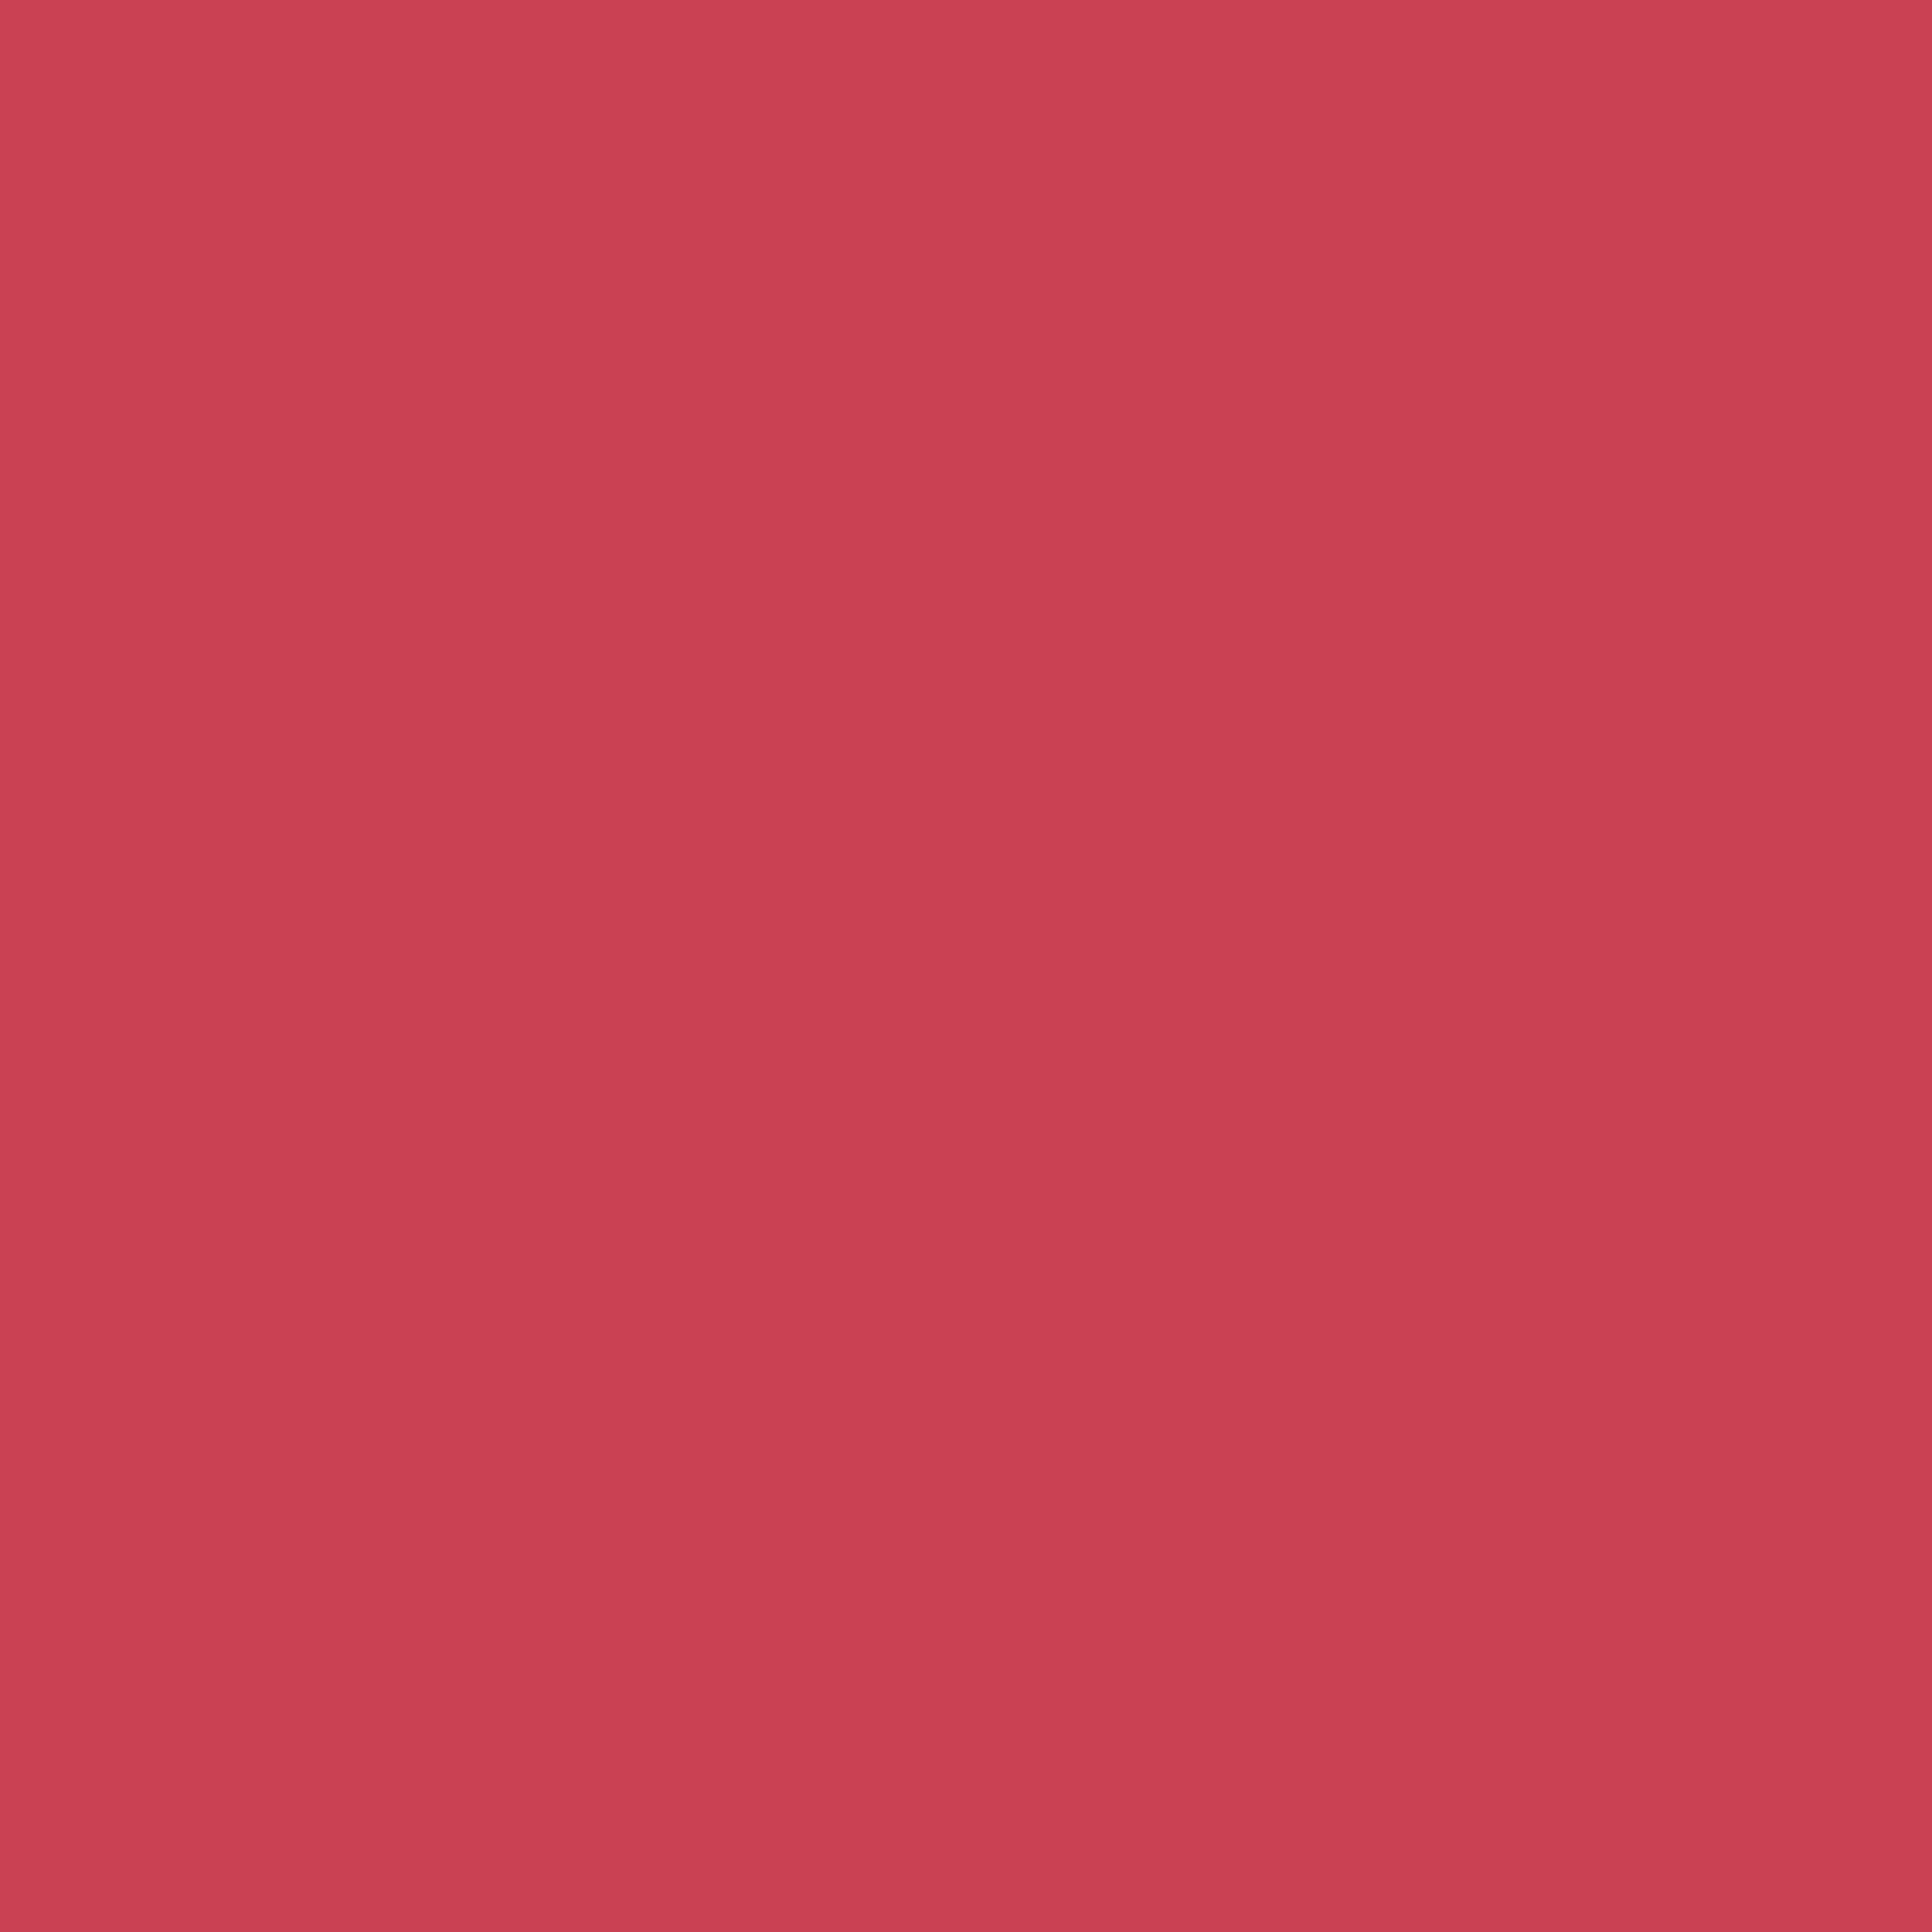 2048x2048 Brick Red Solid Color Background